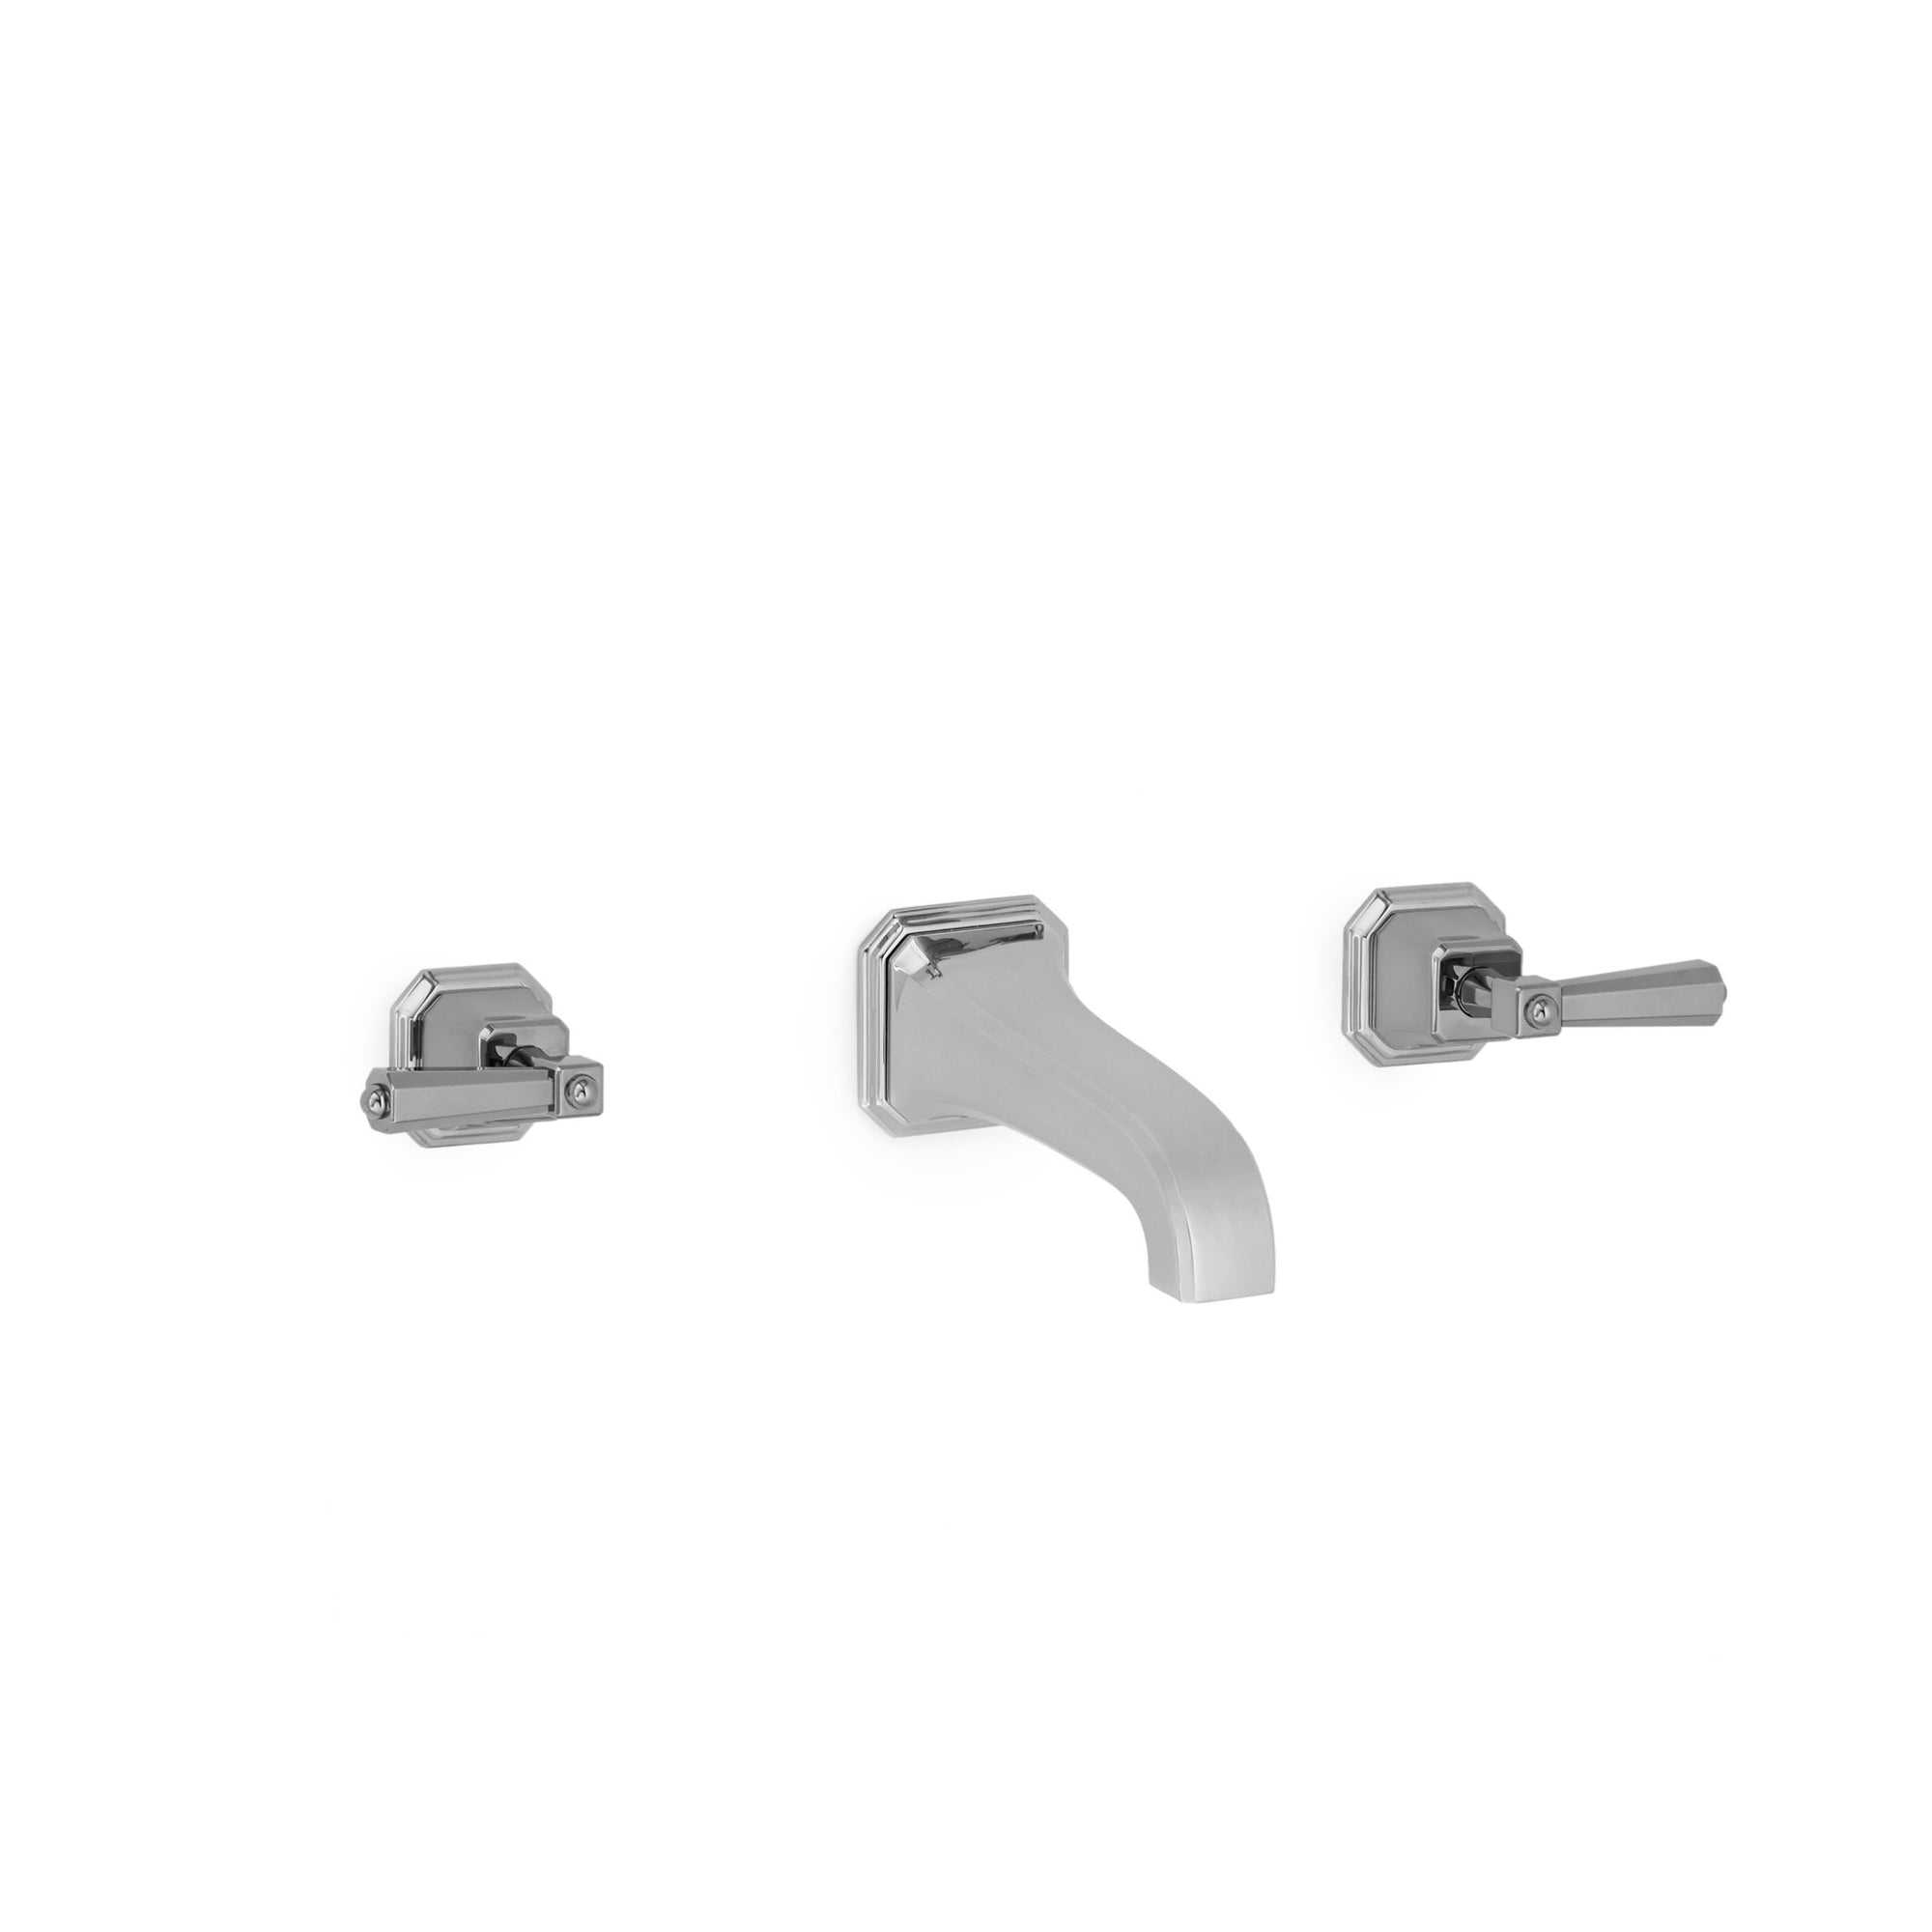 0980WBS824-S-CP Sherle Wagner International Harrison Lever Wall Mount Faucet Set Small in Polished Chrome metal finish